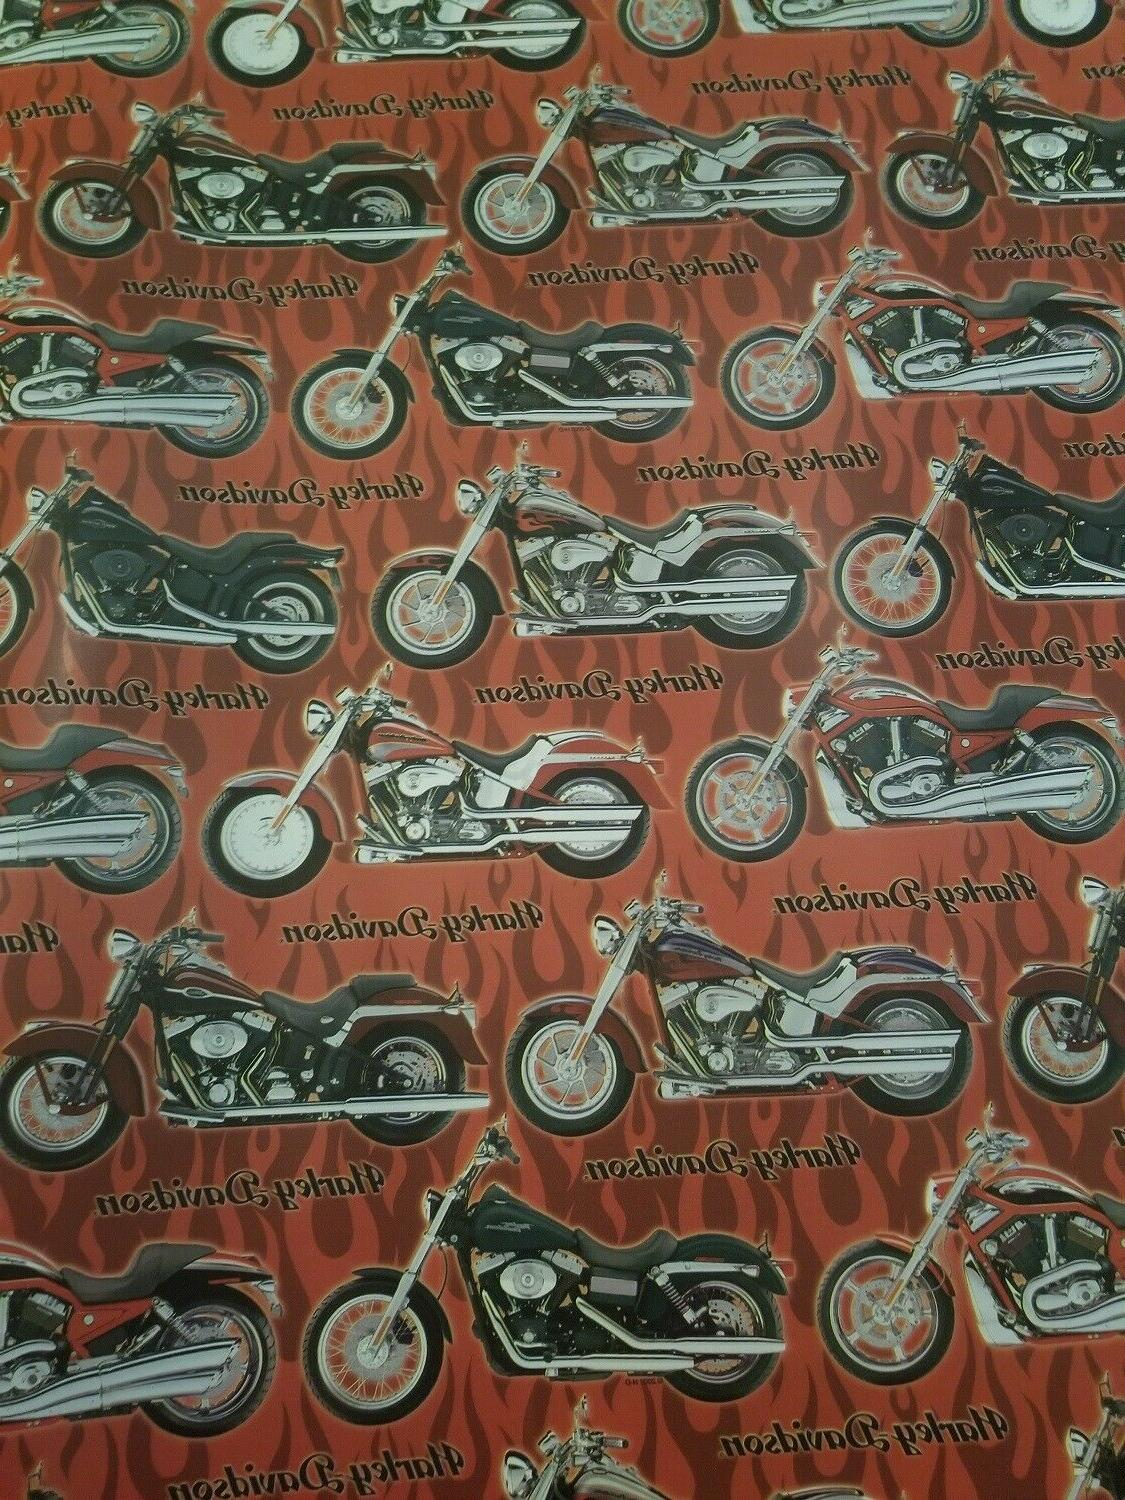 harley davidson gift wrapping paper bikes 32